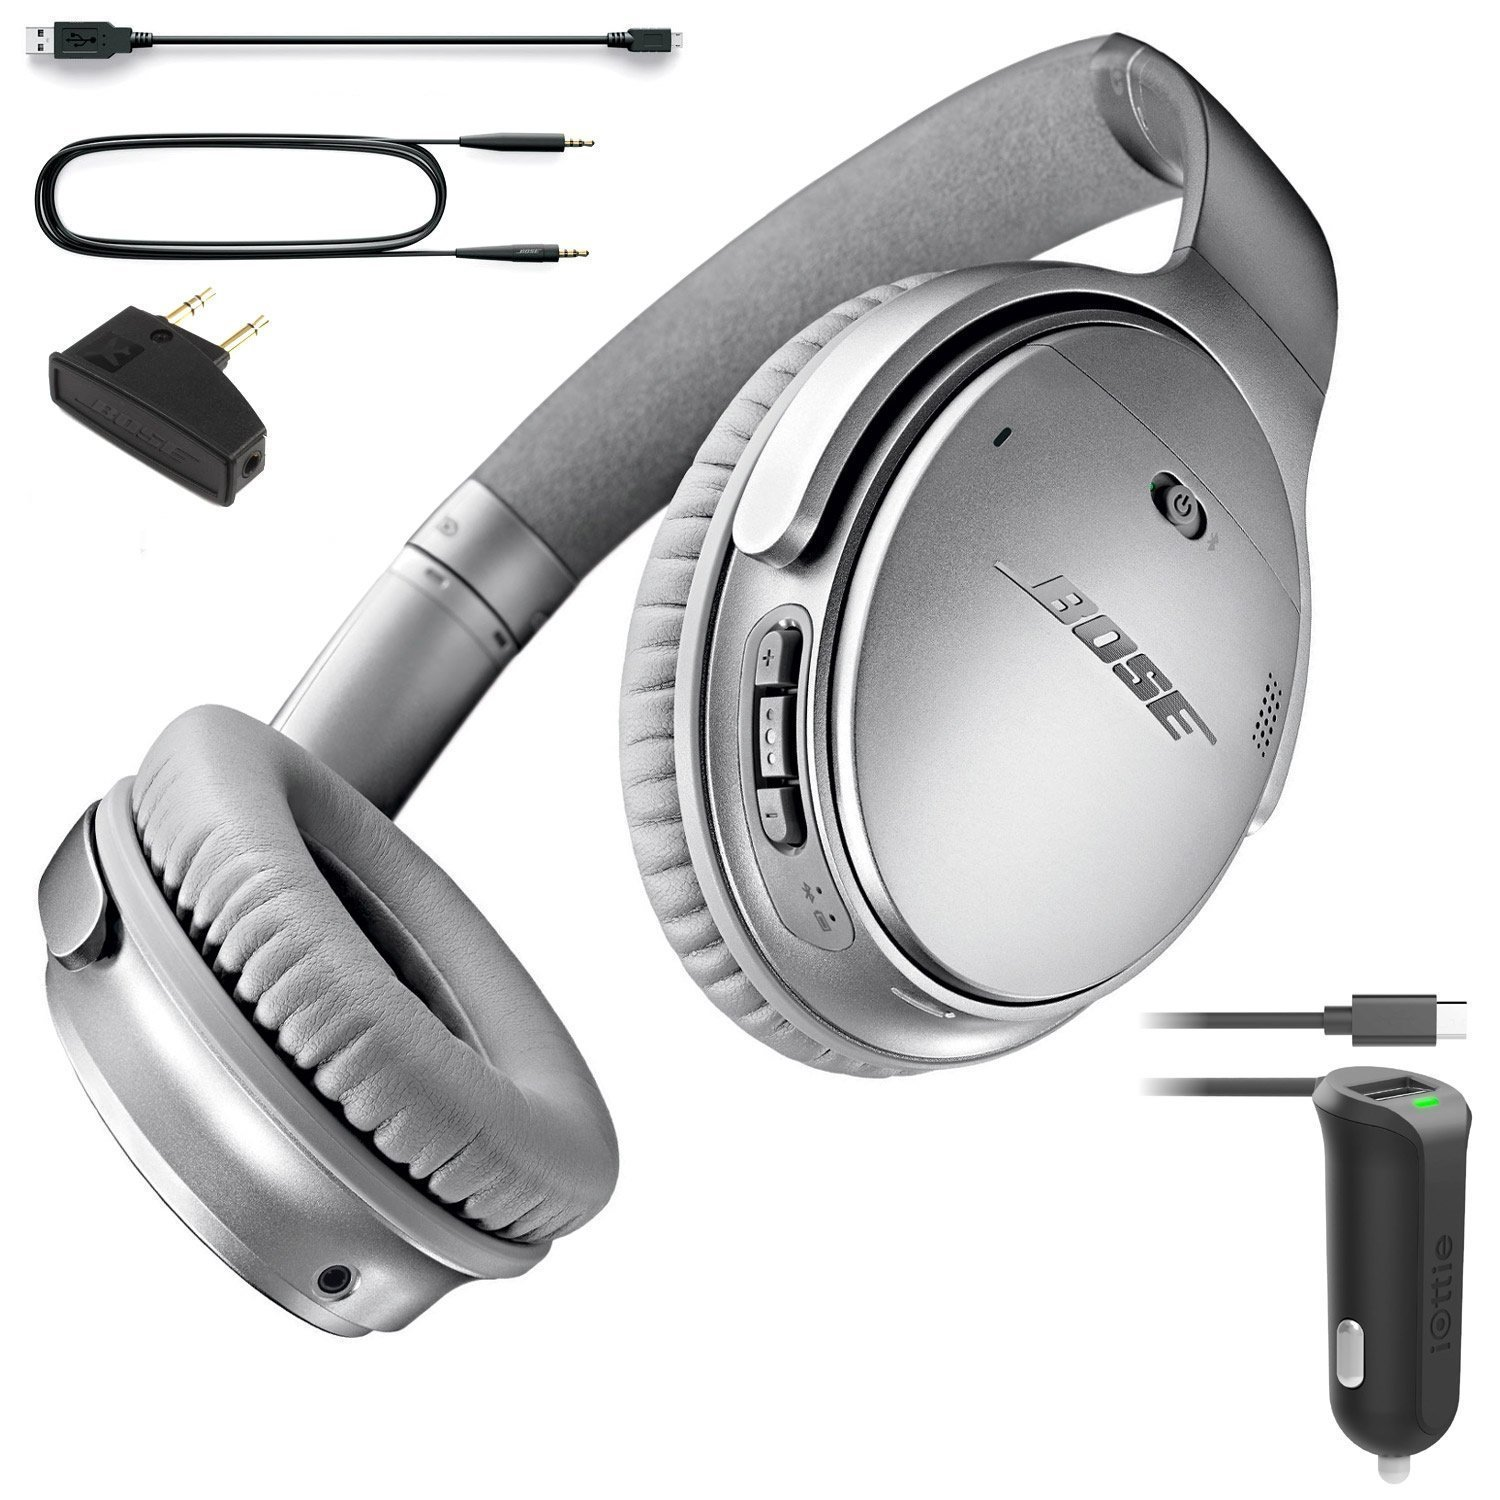 Bose QuietComfort 35 (Series I) Bluetooth Wireless Noise Cancelling Headphones - Silver & Car Charger - Bundle by Bose